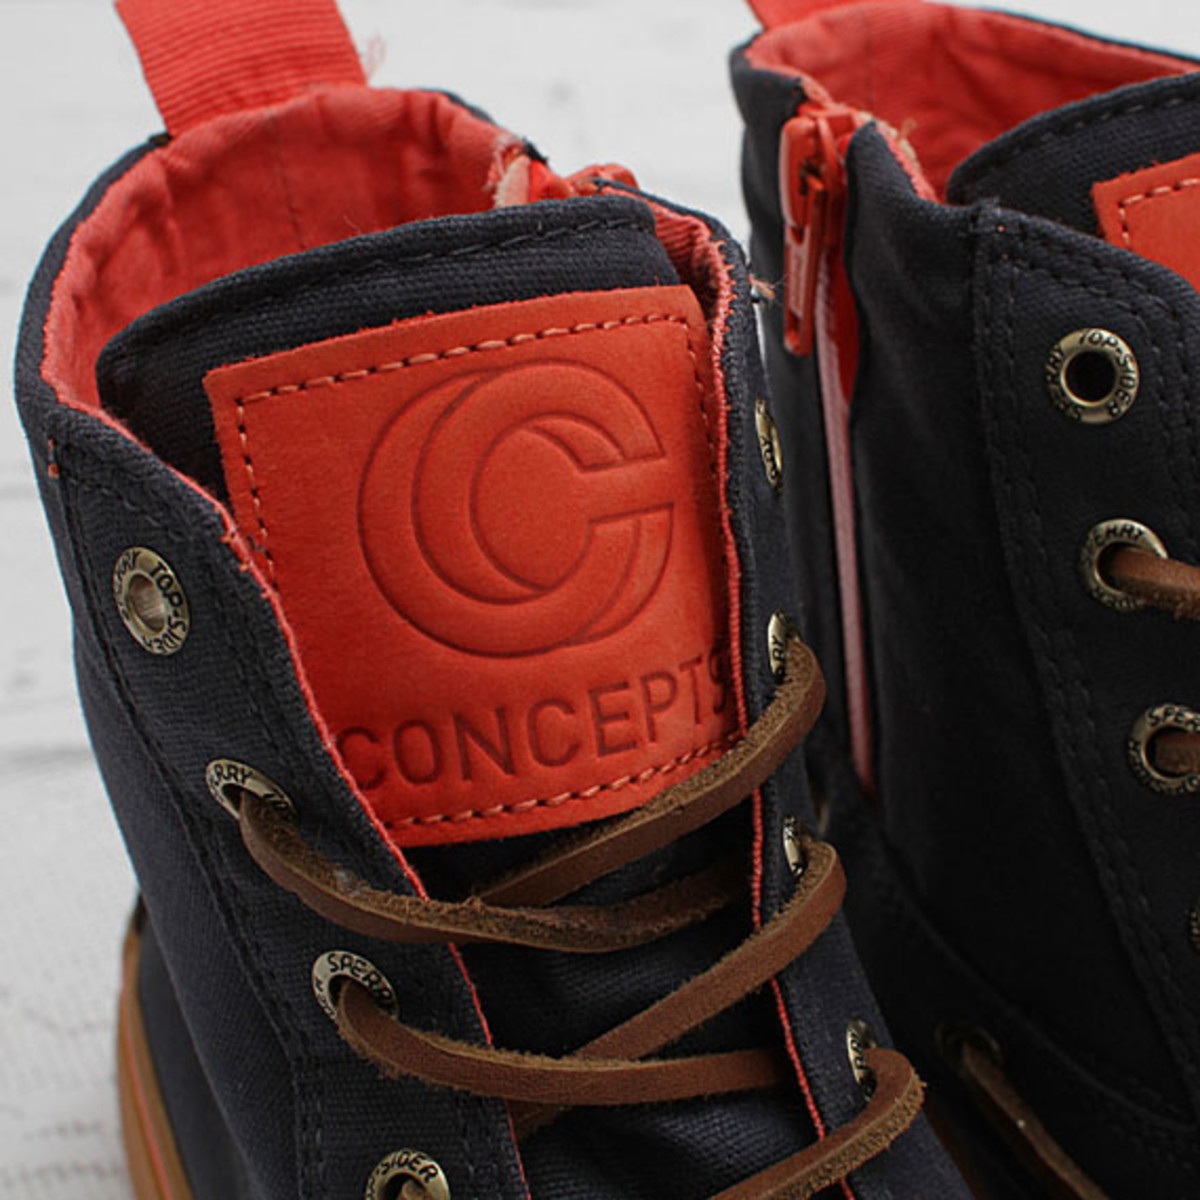 concepts-sperry-top-sider-bahama-boot-fall-2012-16